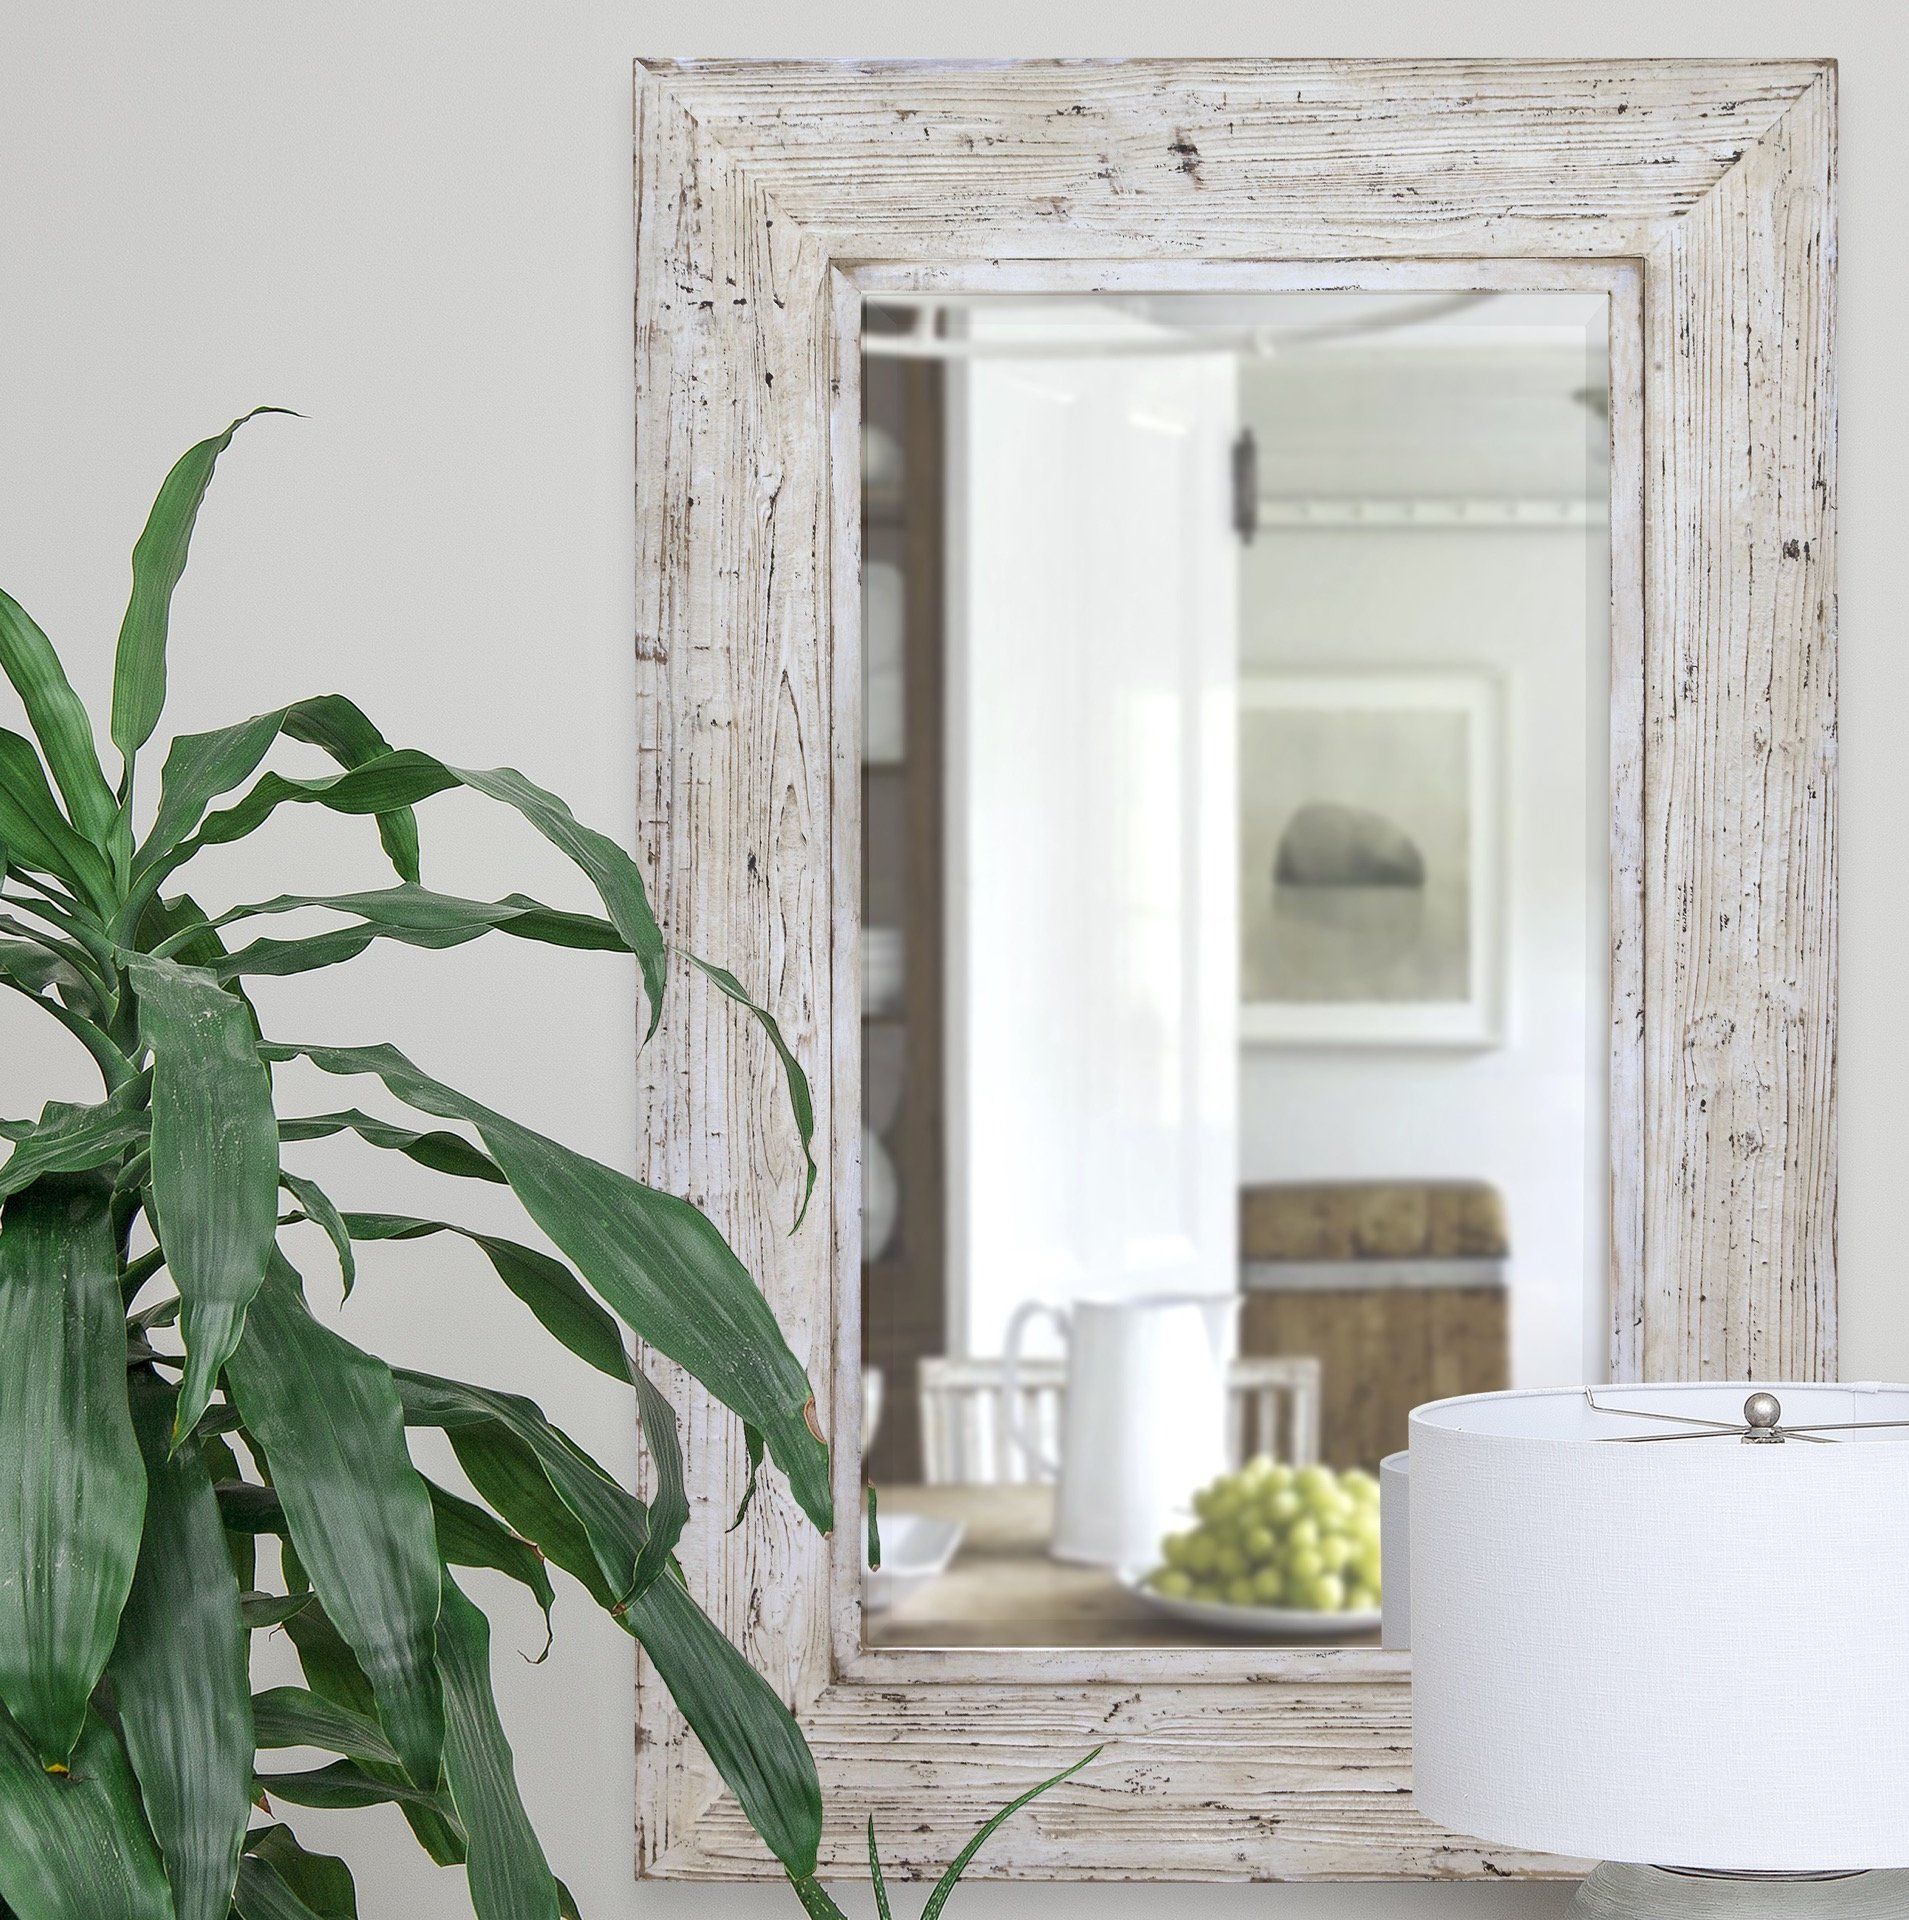 Details About Gracie Oaks Mcfarland Traditional Beveled Wall Mirror In Traditional Beveled Wall Mirrors (View 14 of 20)